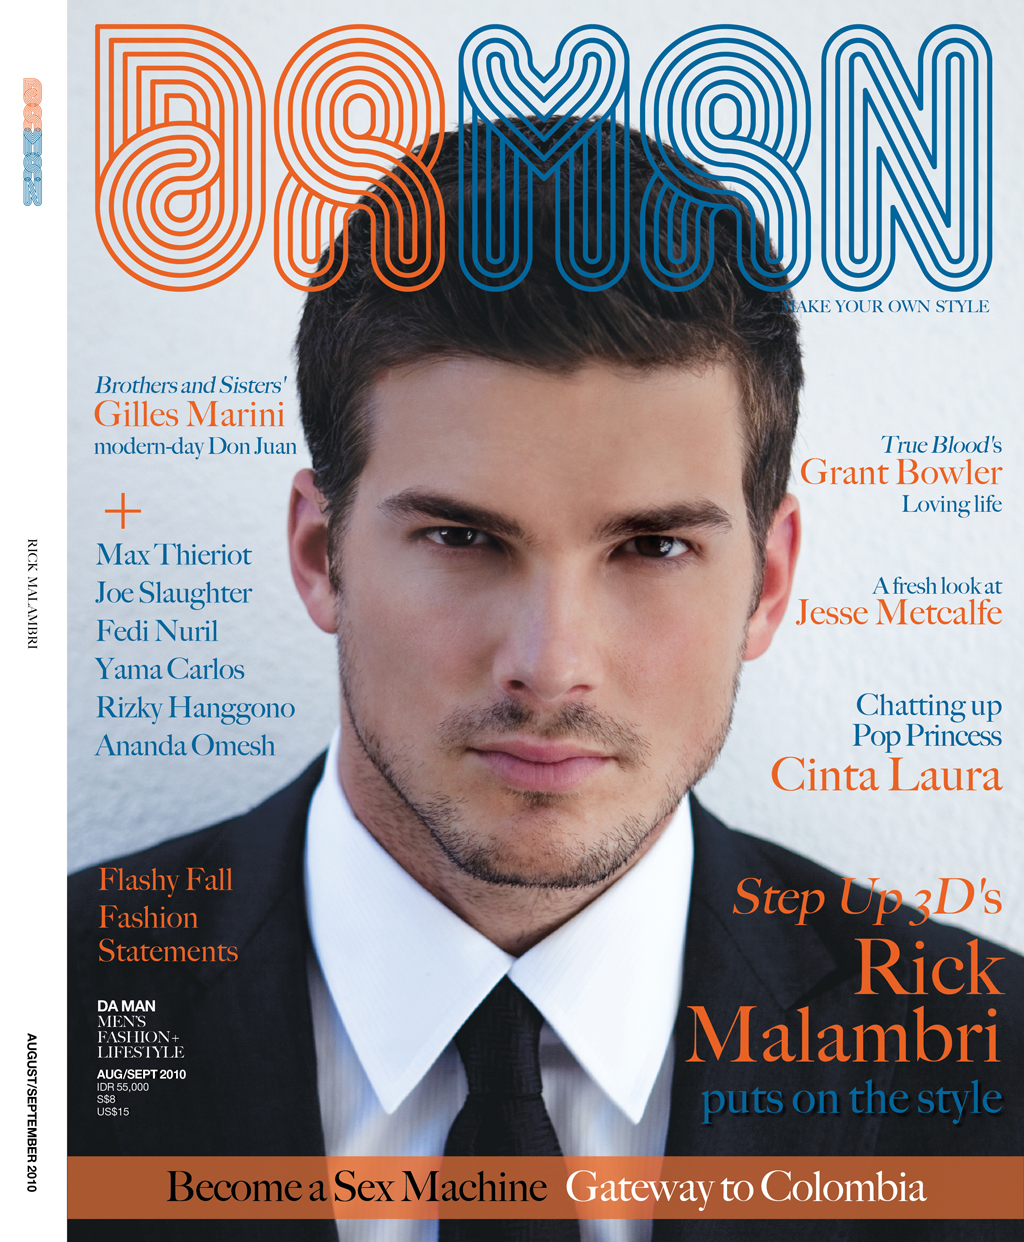 Cover DA MAN Aug/Sep 2010